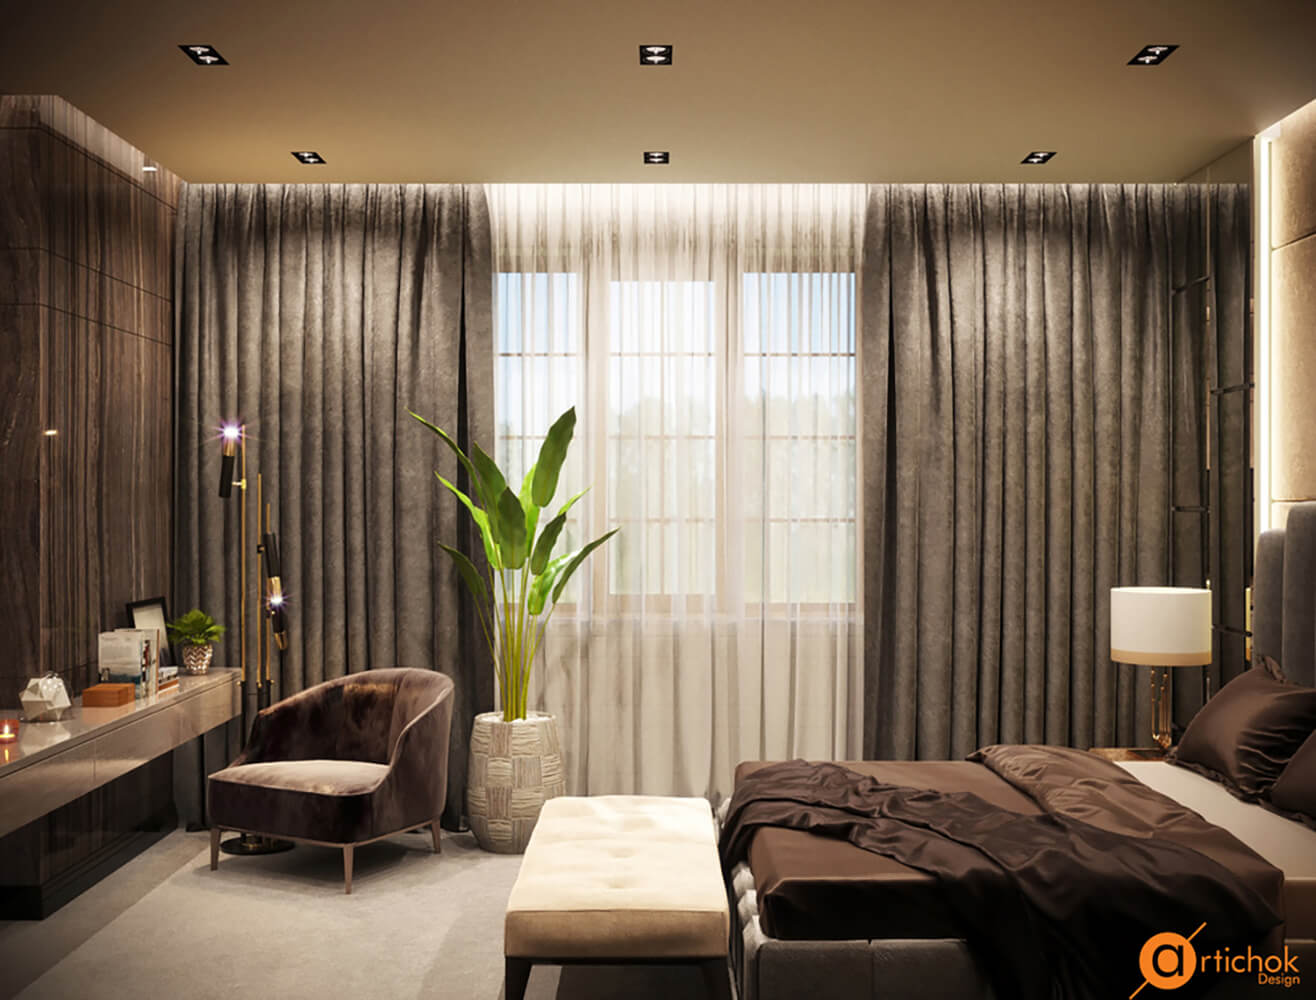 1000x800-luxury-guest-bedroom-2.3a9..pagespeed.ce.bczufp5jrz